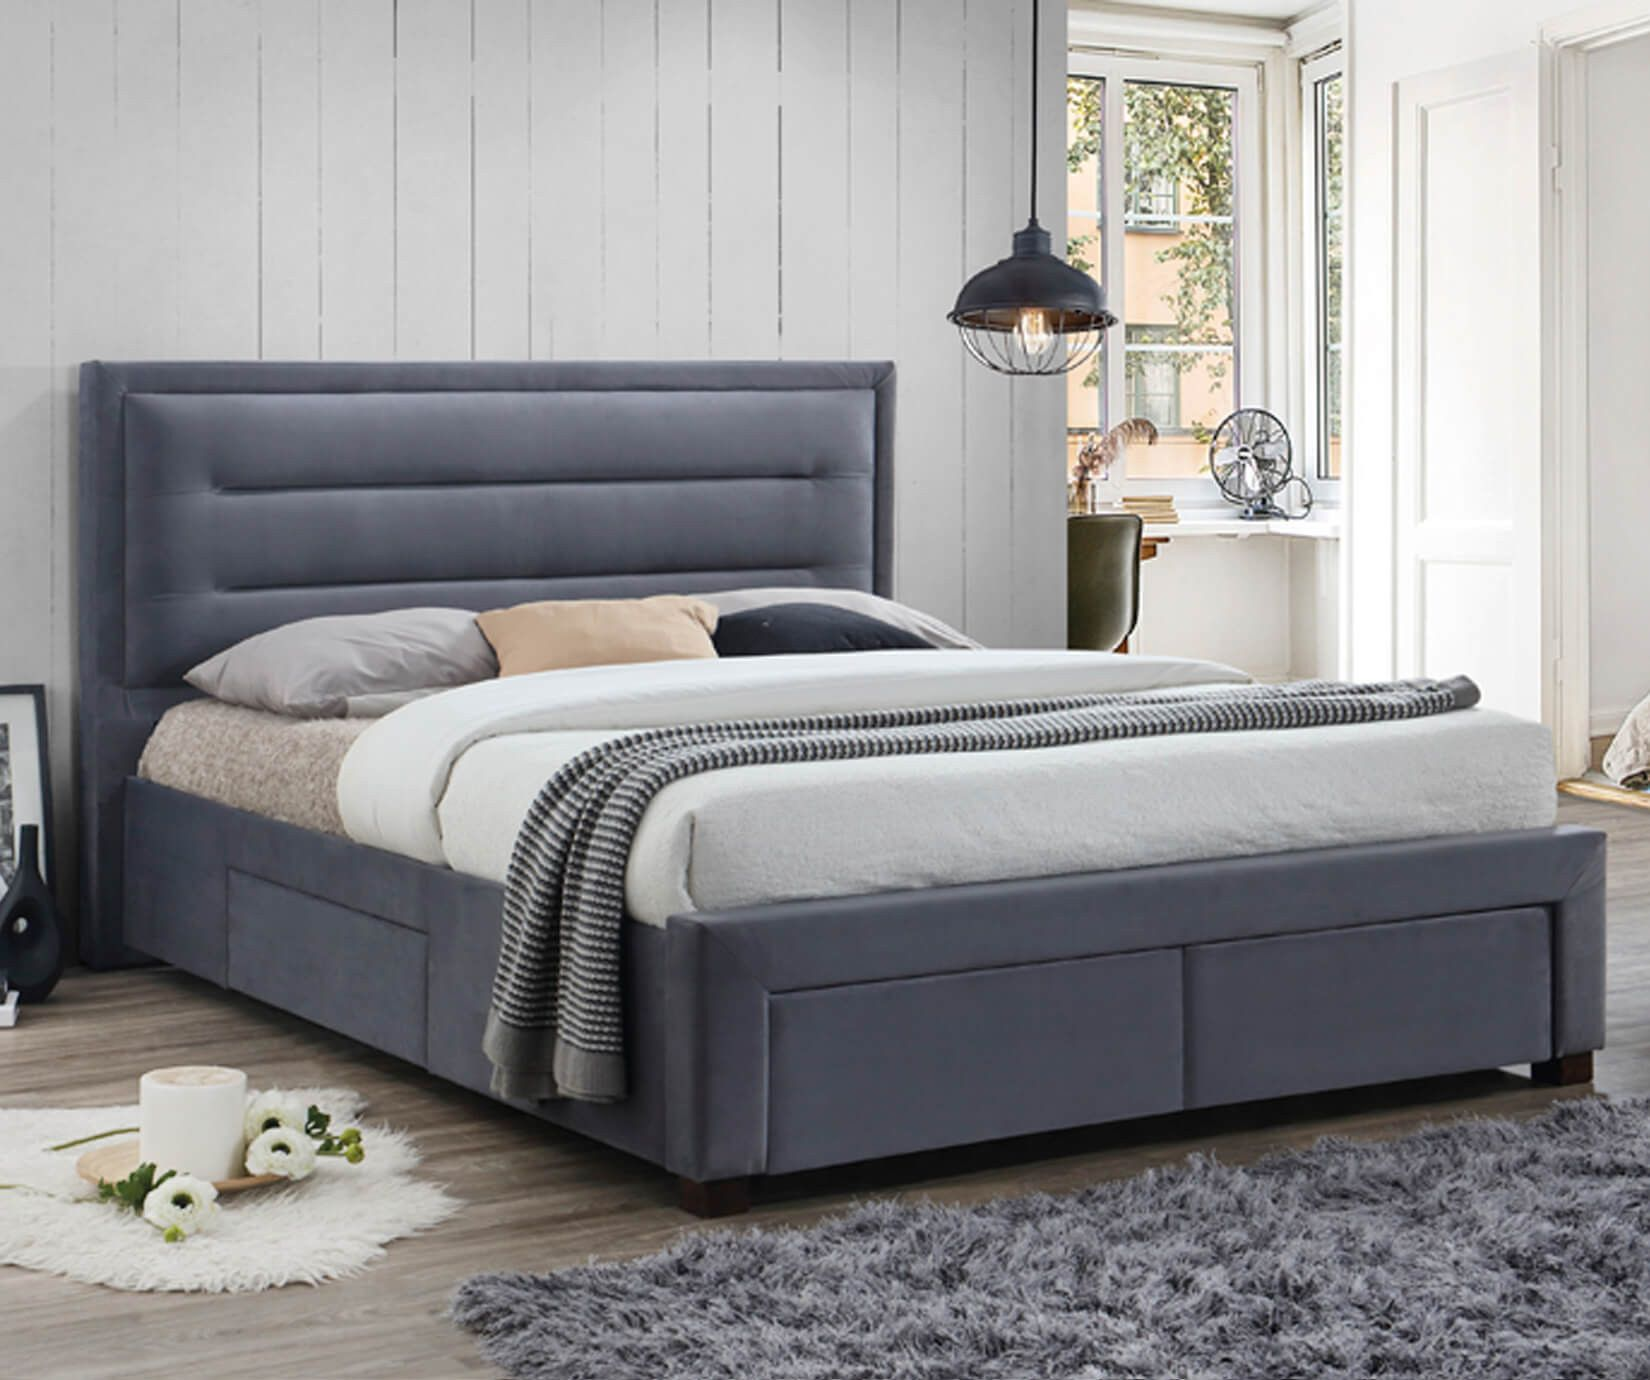 Fabric Bed Frames Upholstered Fabric Bed Frames Divan Bed Set Online In Uk 床 In